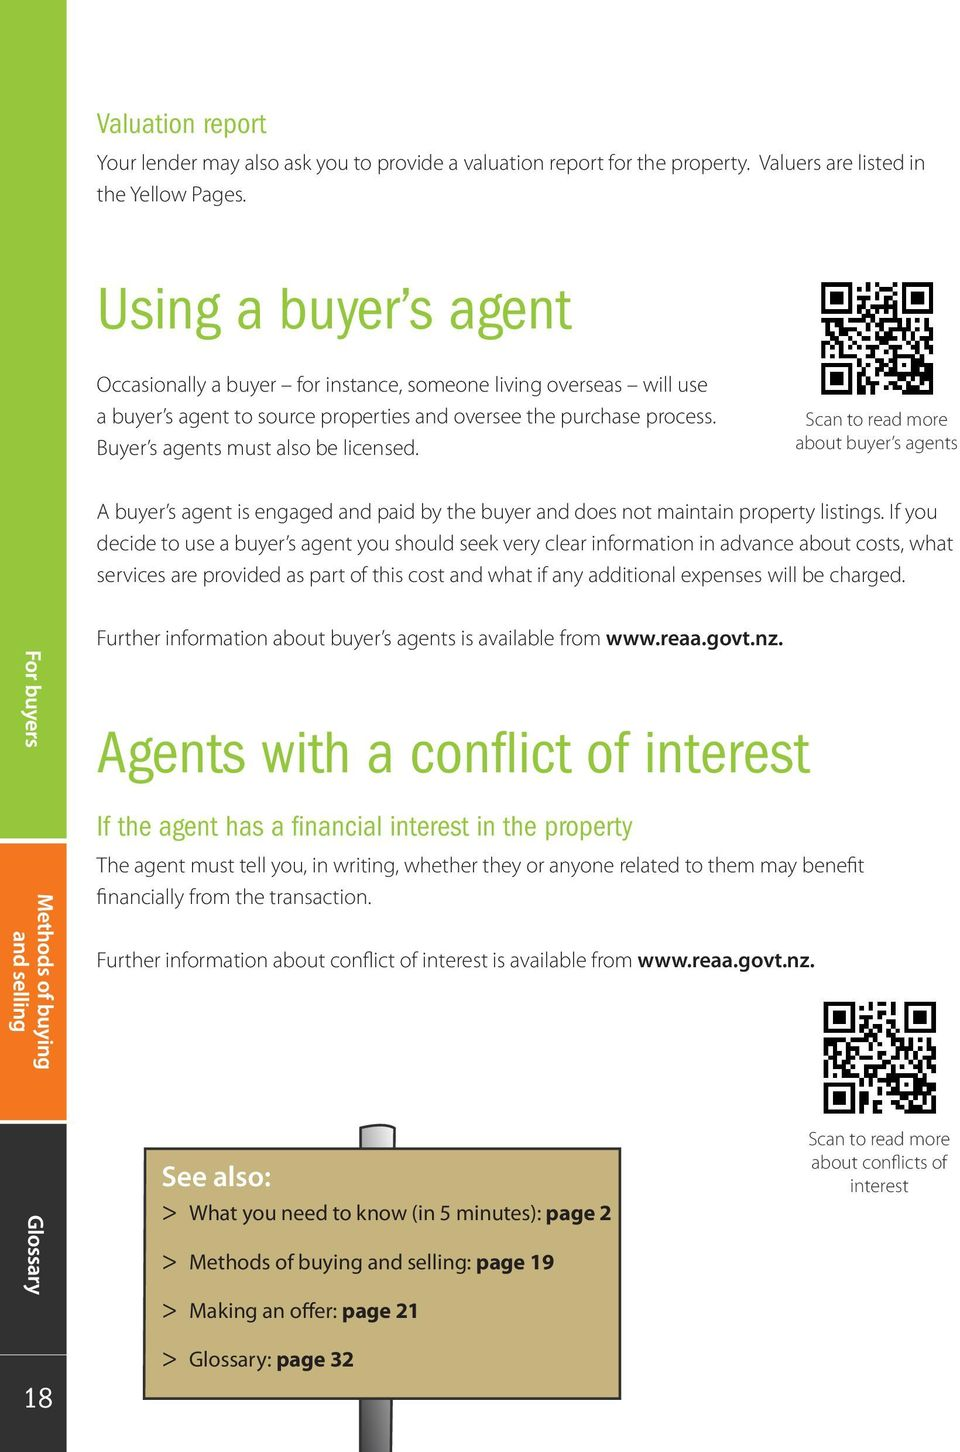 Scan to read more about buyer s agents A buyer s agent is engaged and paid by the buyer and does not maintain property listings.